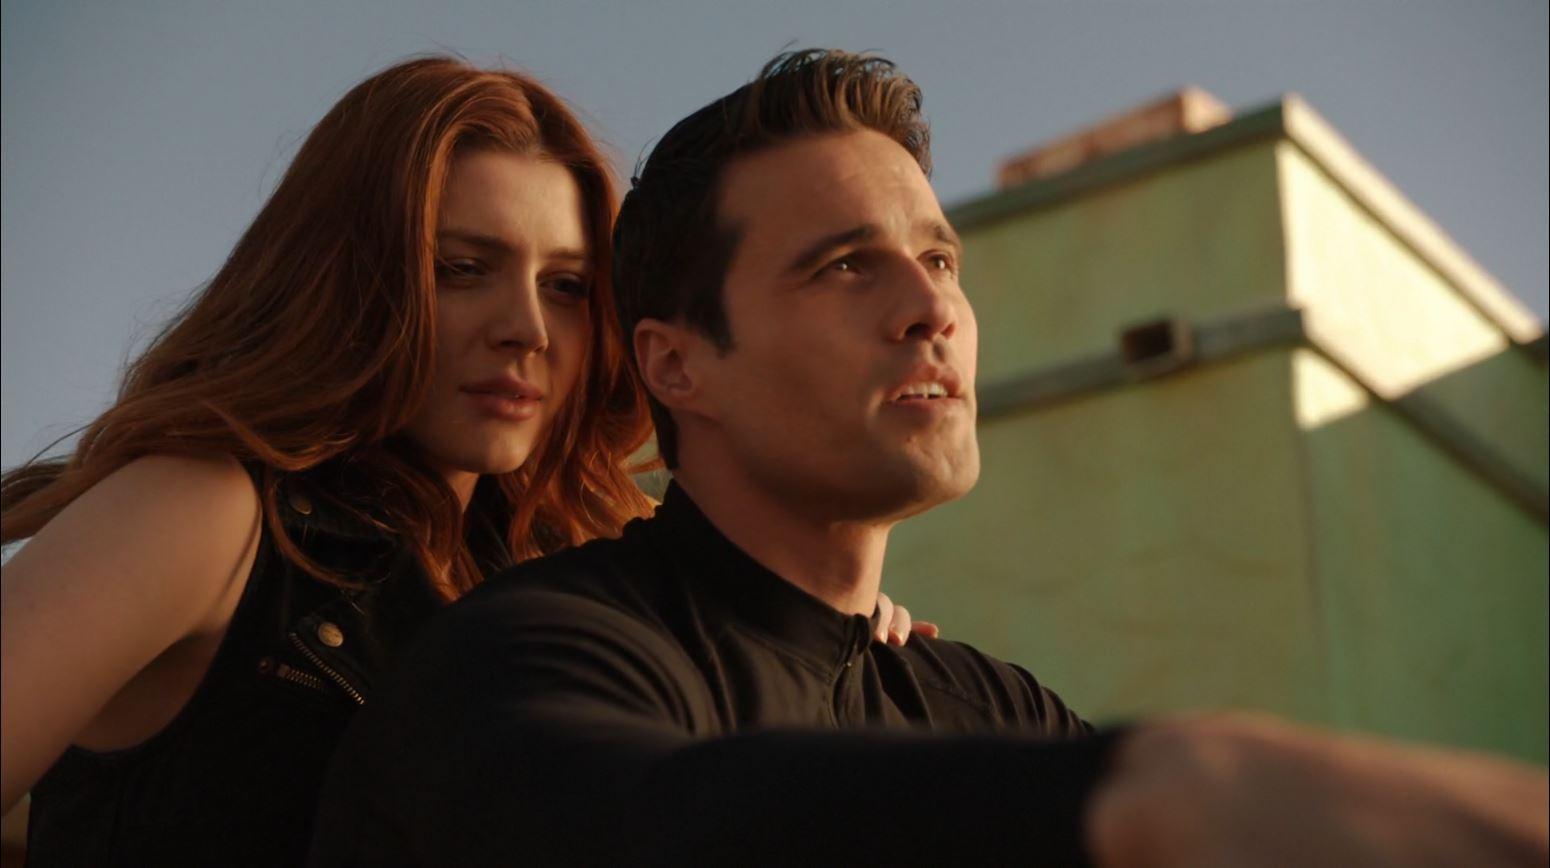 Agents of S.H.I.E.L.D S1Ep15 'Yes Men' - Lorelei and Ward acting out as Bonny and Clyde